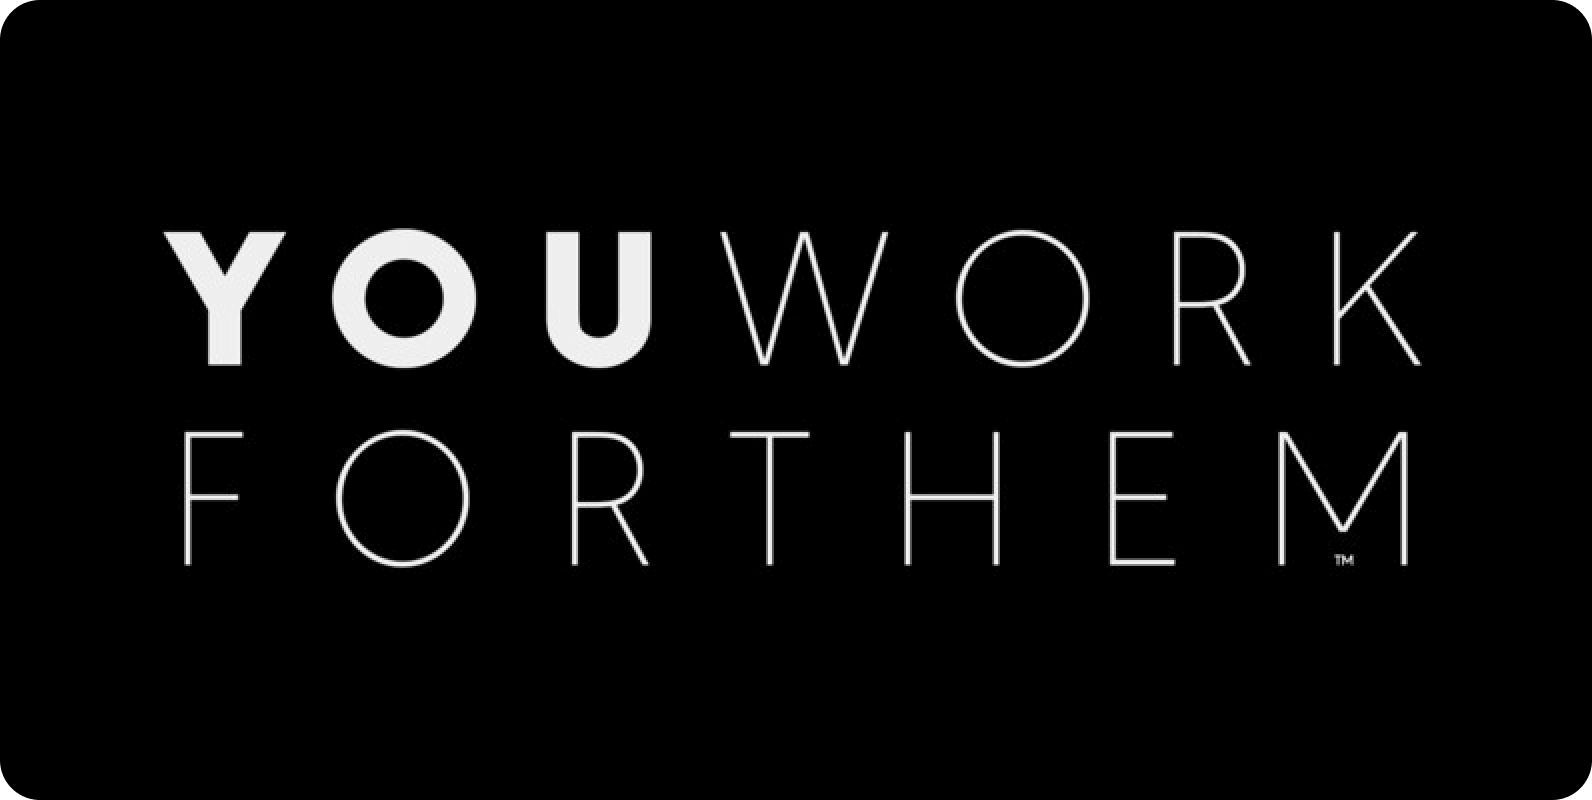 Both-paid-and-free-fonts-still-dope-and-designers-have-to-use-their-creativity-to-work-with-it